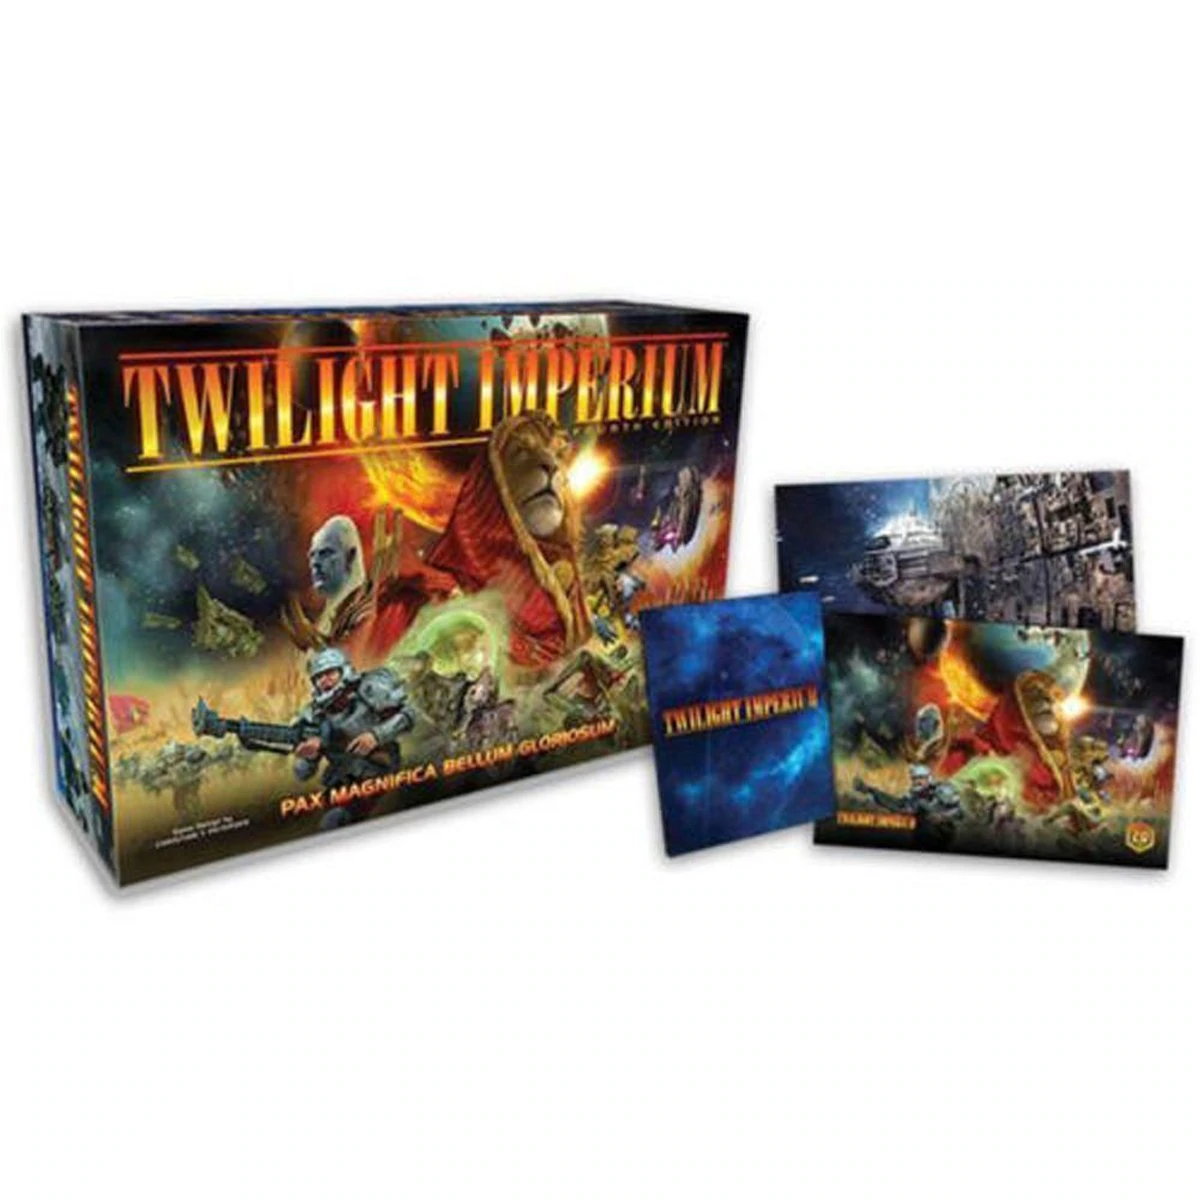 Details about Twilight Imperium 4th Edition Promotion w/ Hardcover Rule  Book plus extra